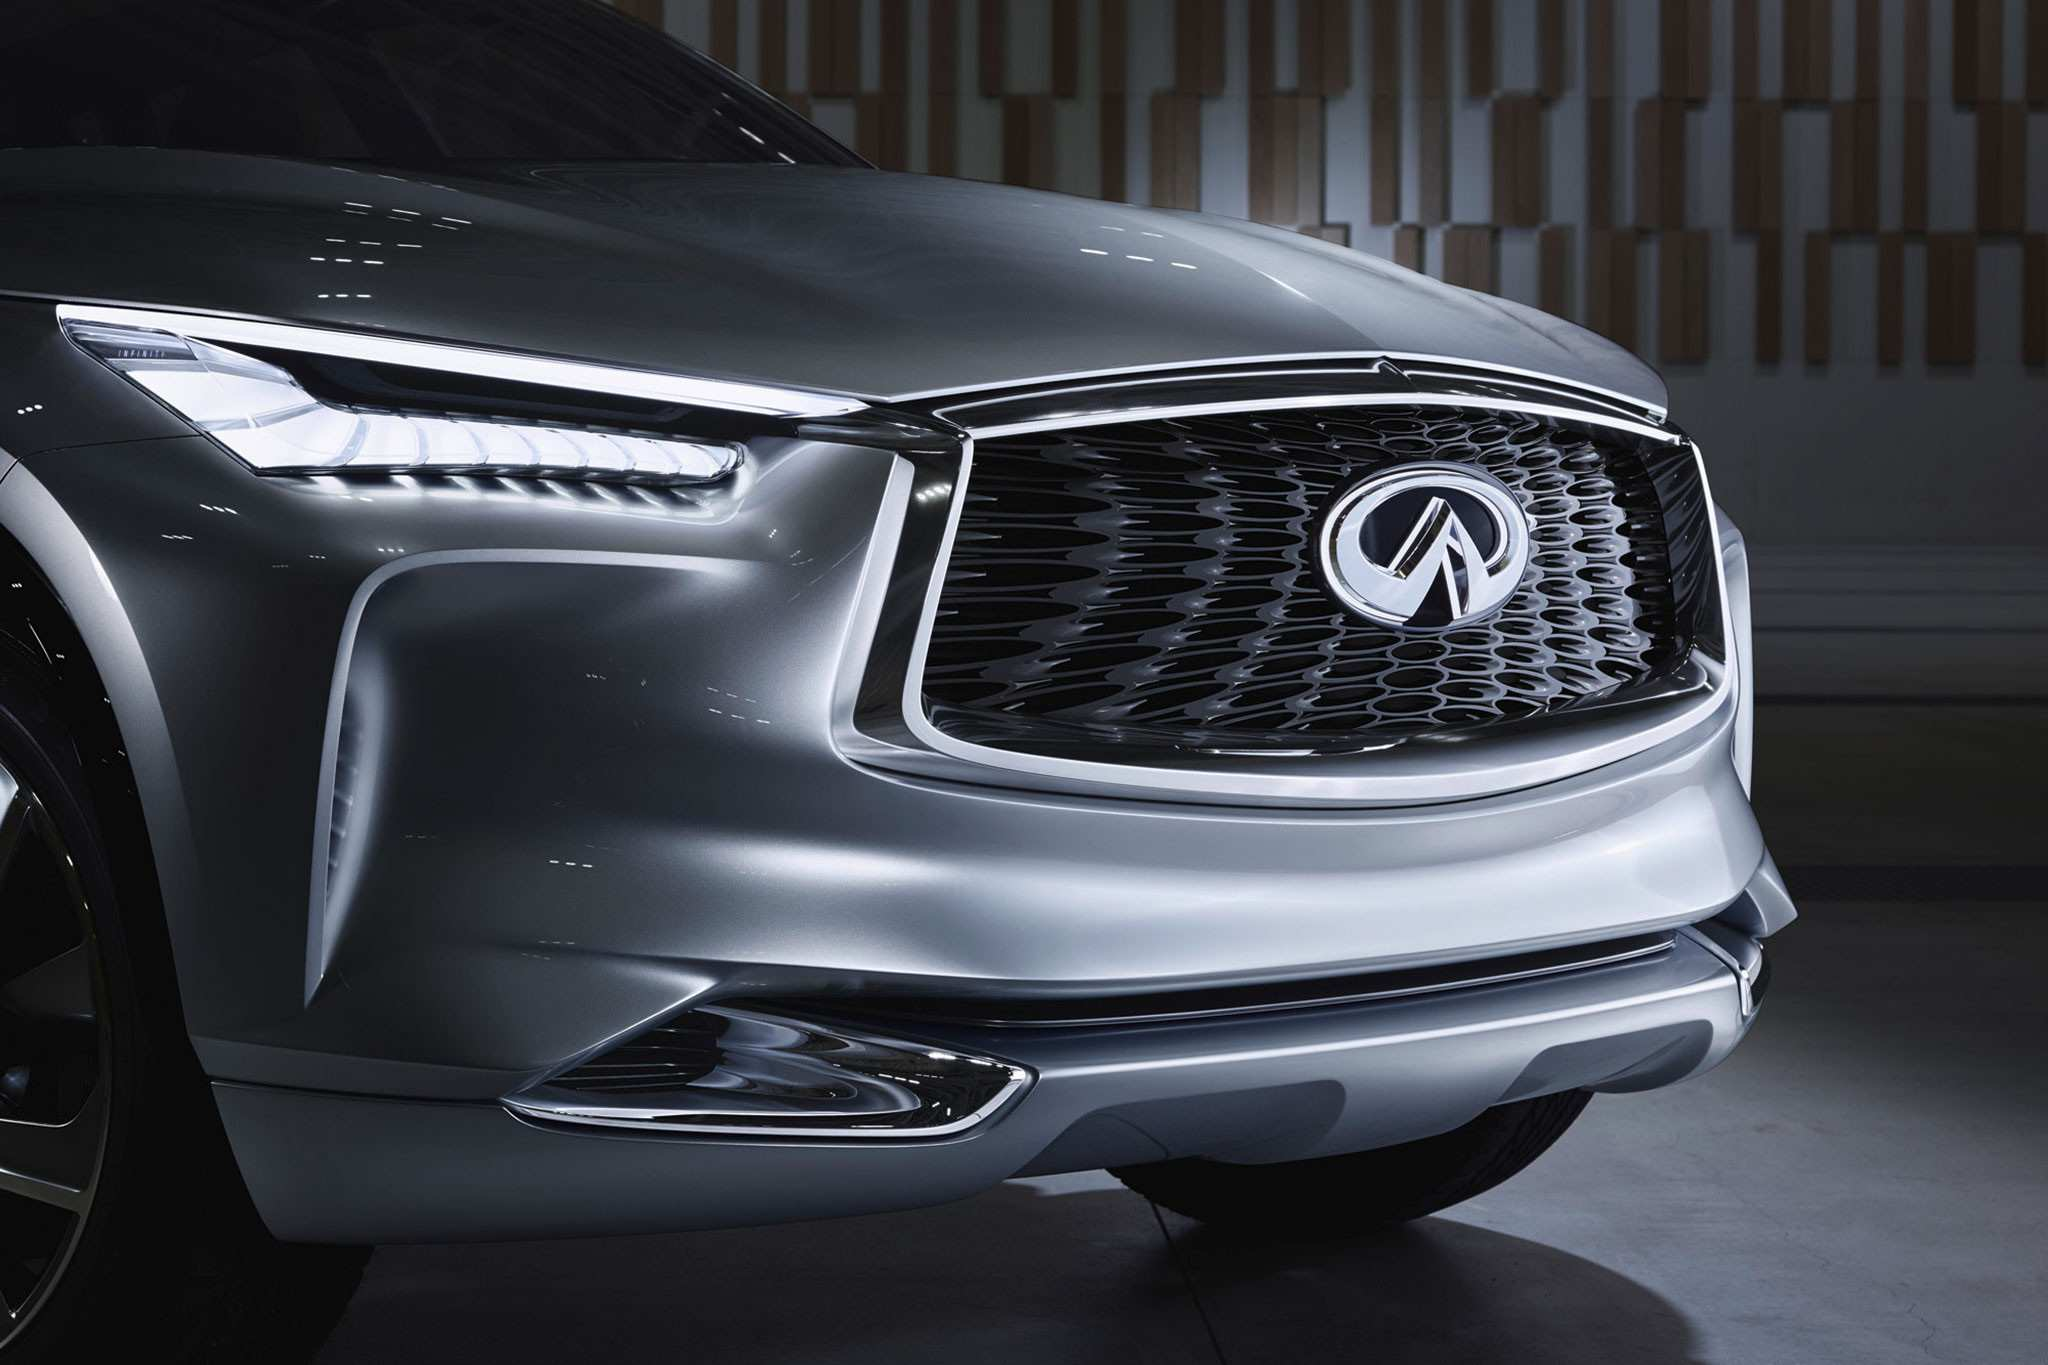 24 The 2020 Infiniti Qx60 Redesign Picture for 2020 Infiniti Qx60 Redesign